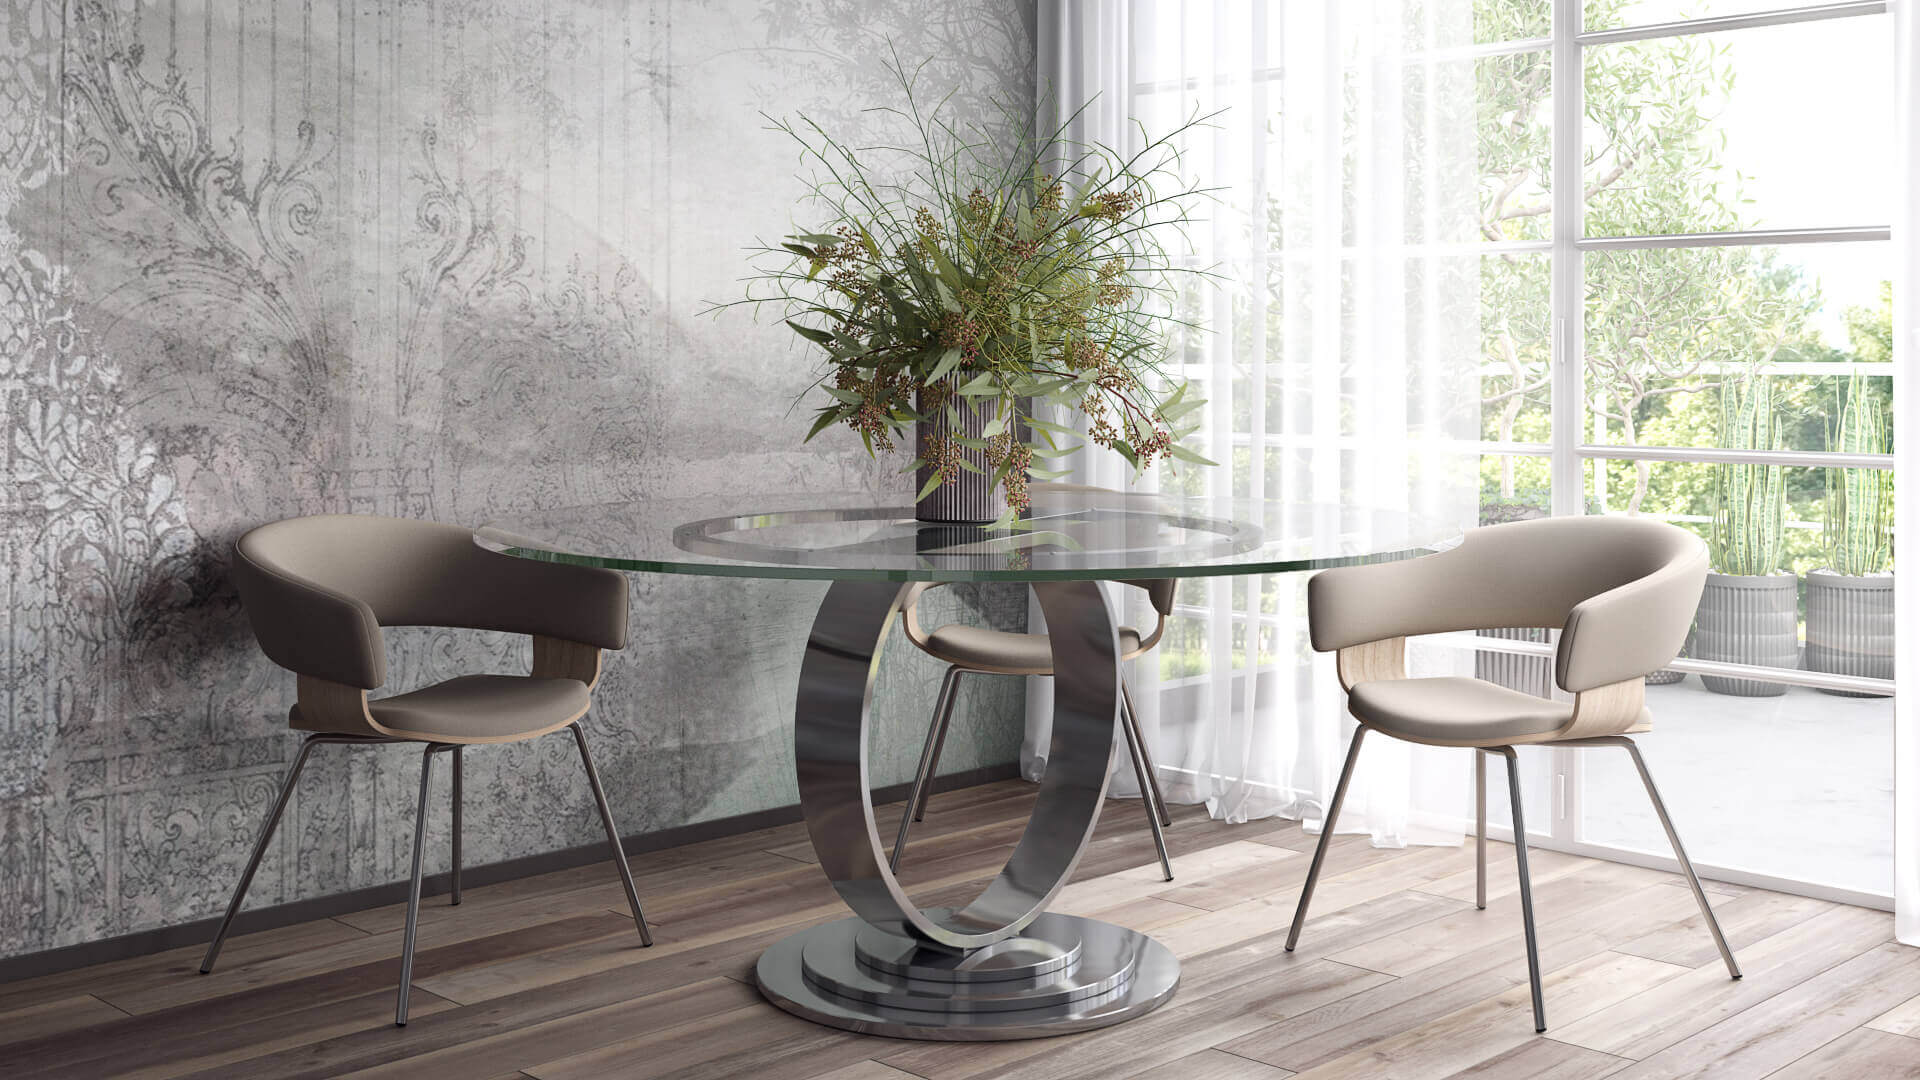 3ds Max Visualization for Dining Room Furniture